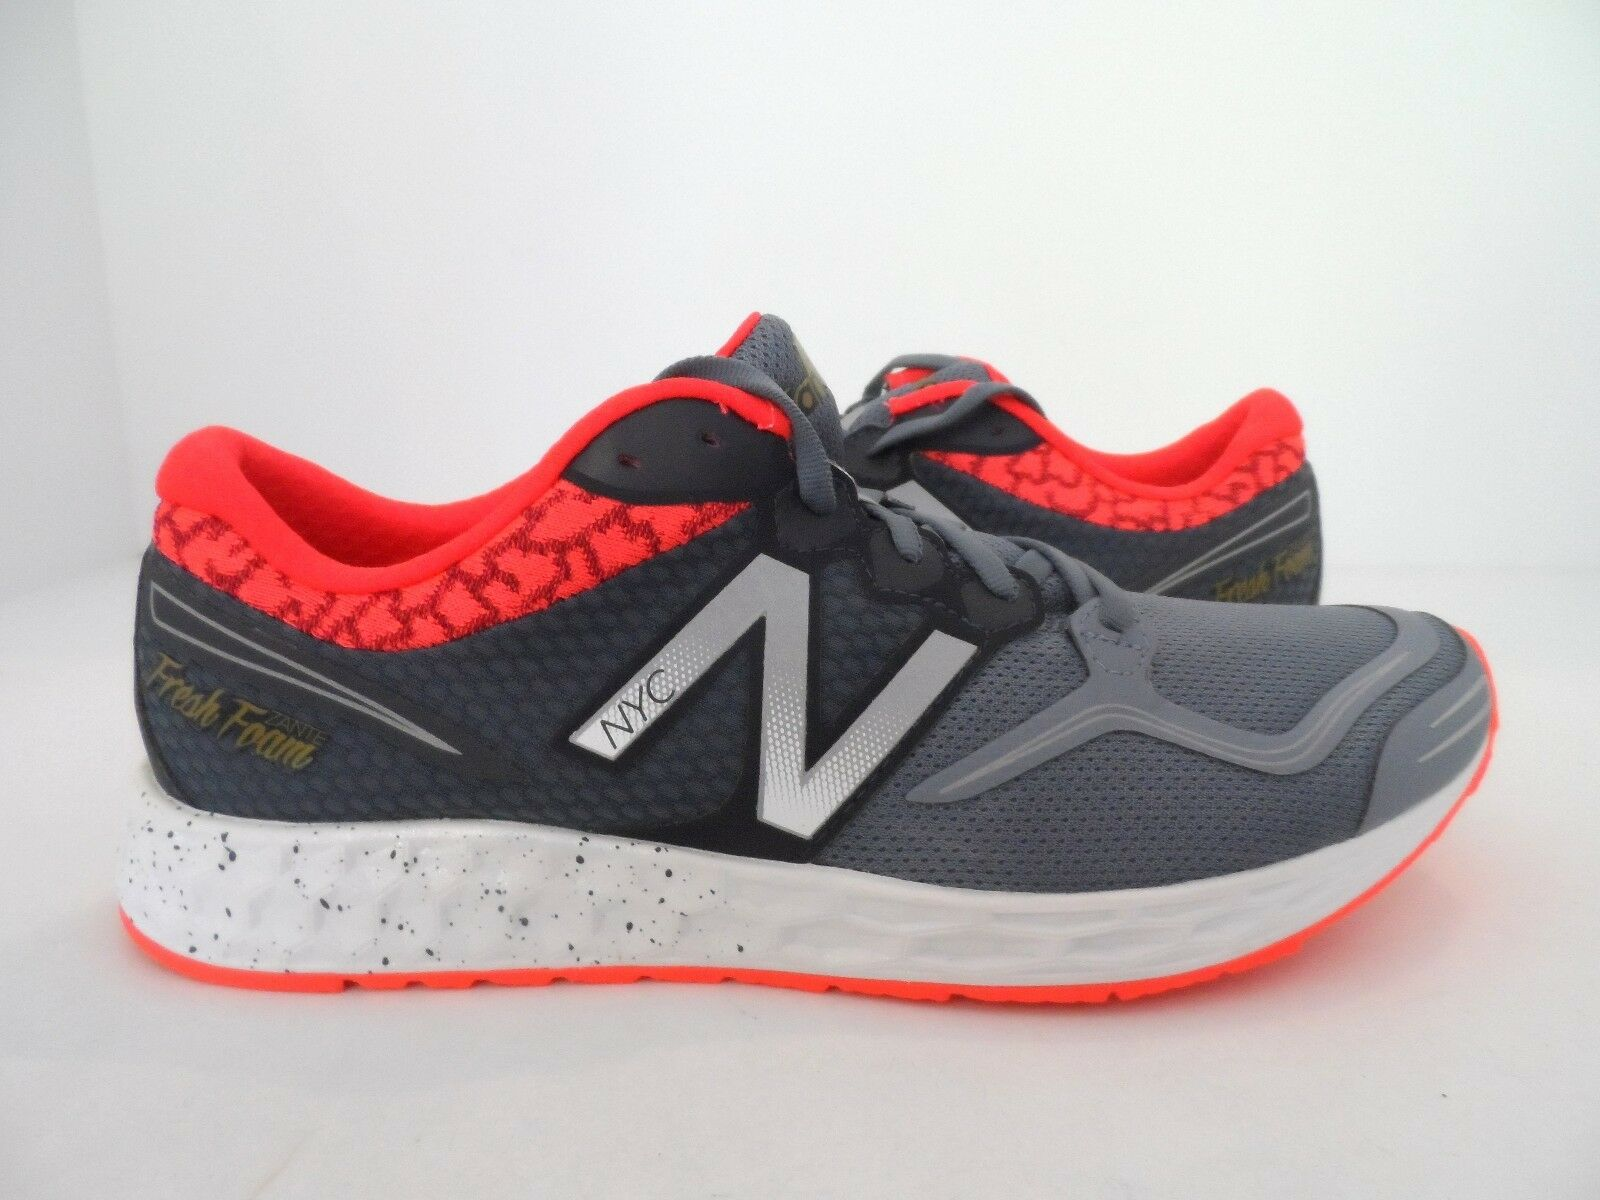 New Balance Men's M1980V1 Fresh Foam Zante NYC Running shoes Grey Red Size 9.5